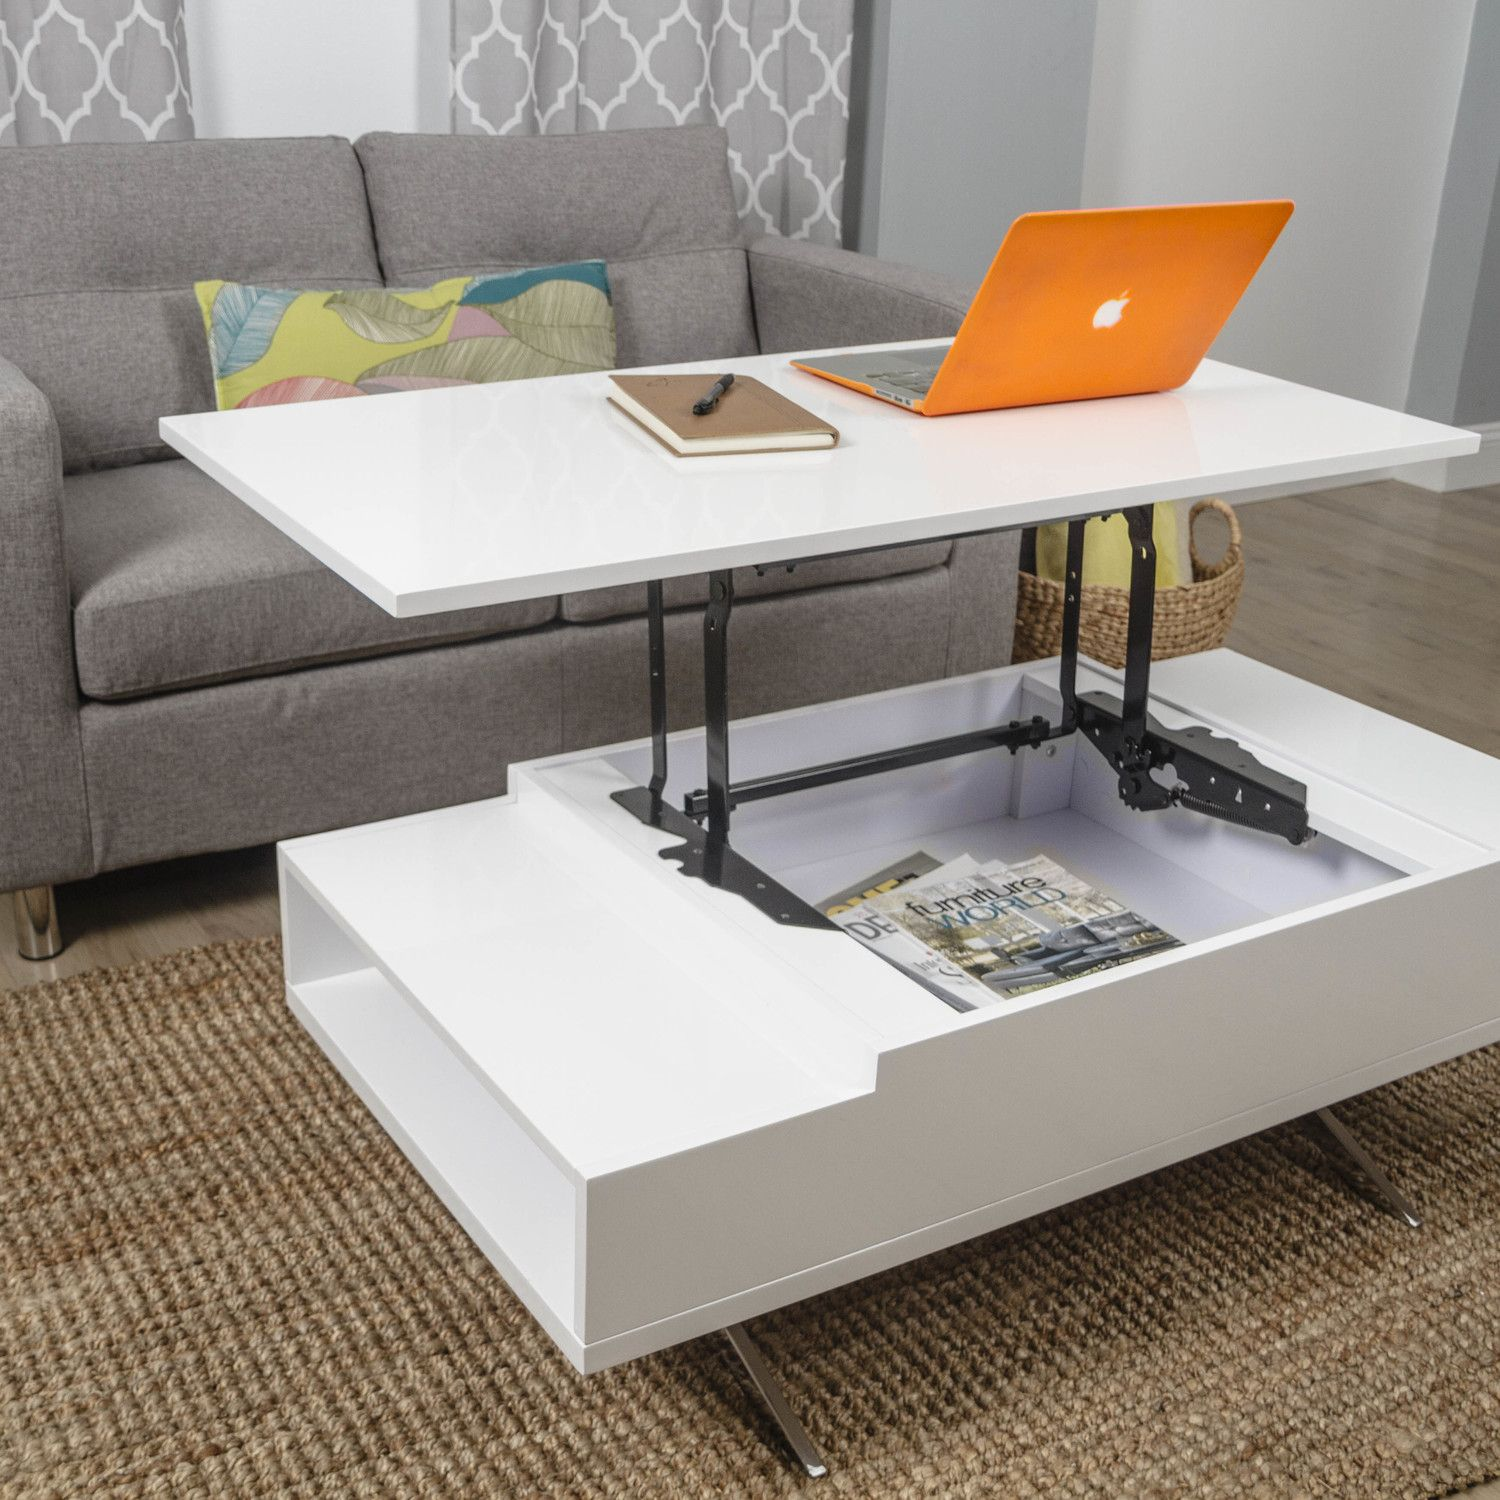 Brockton Coffee Table - Wareham Coffee Table Hidden Storage, Feature And Coffee